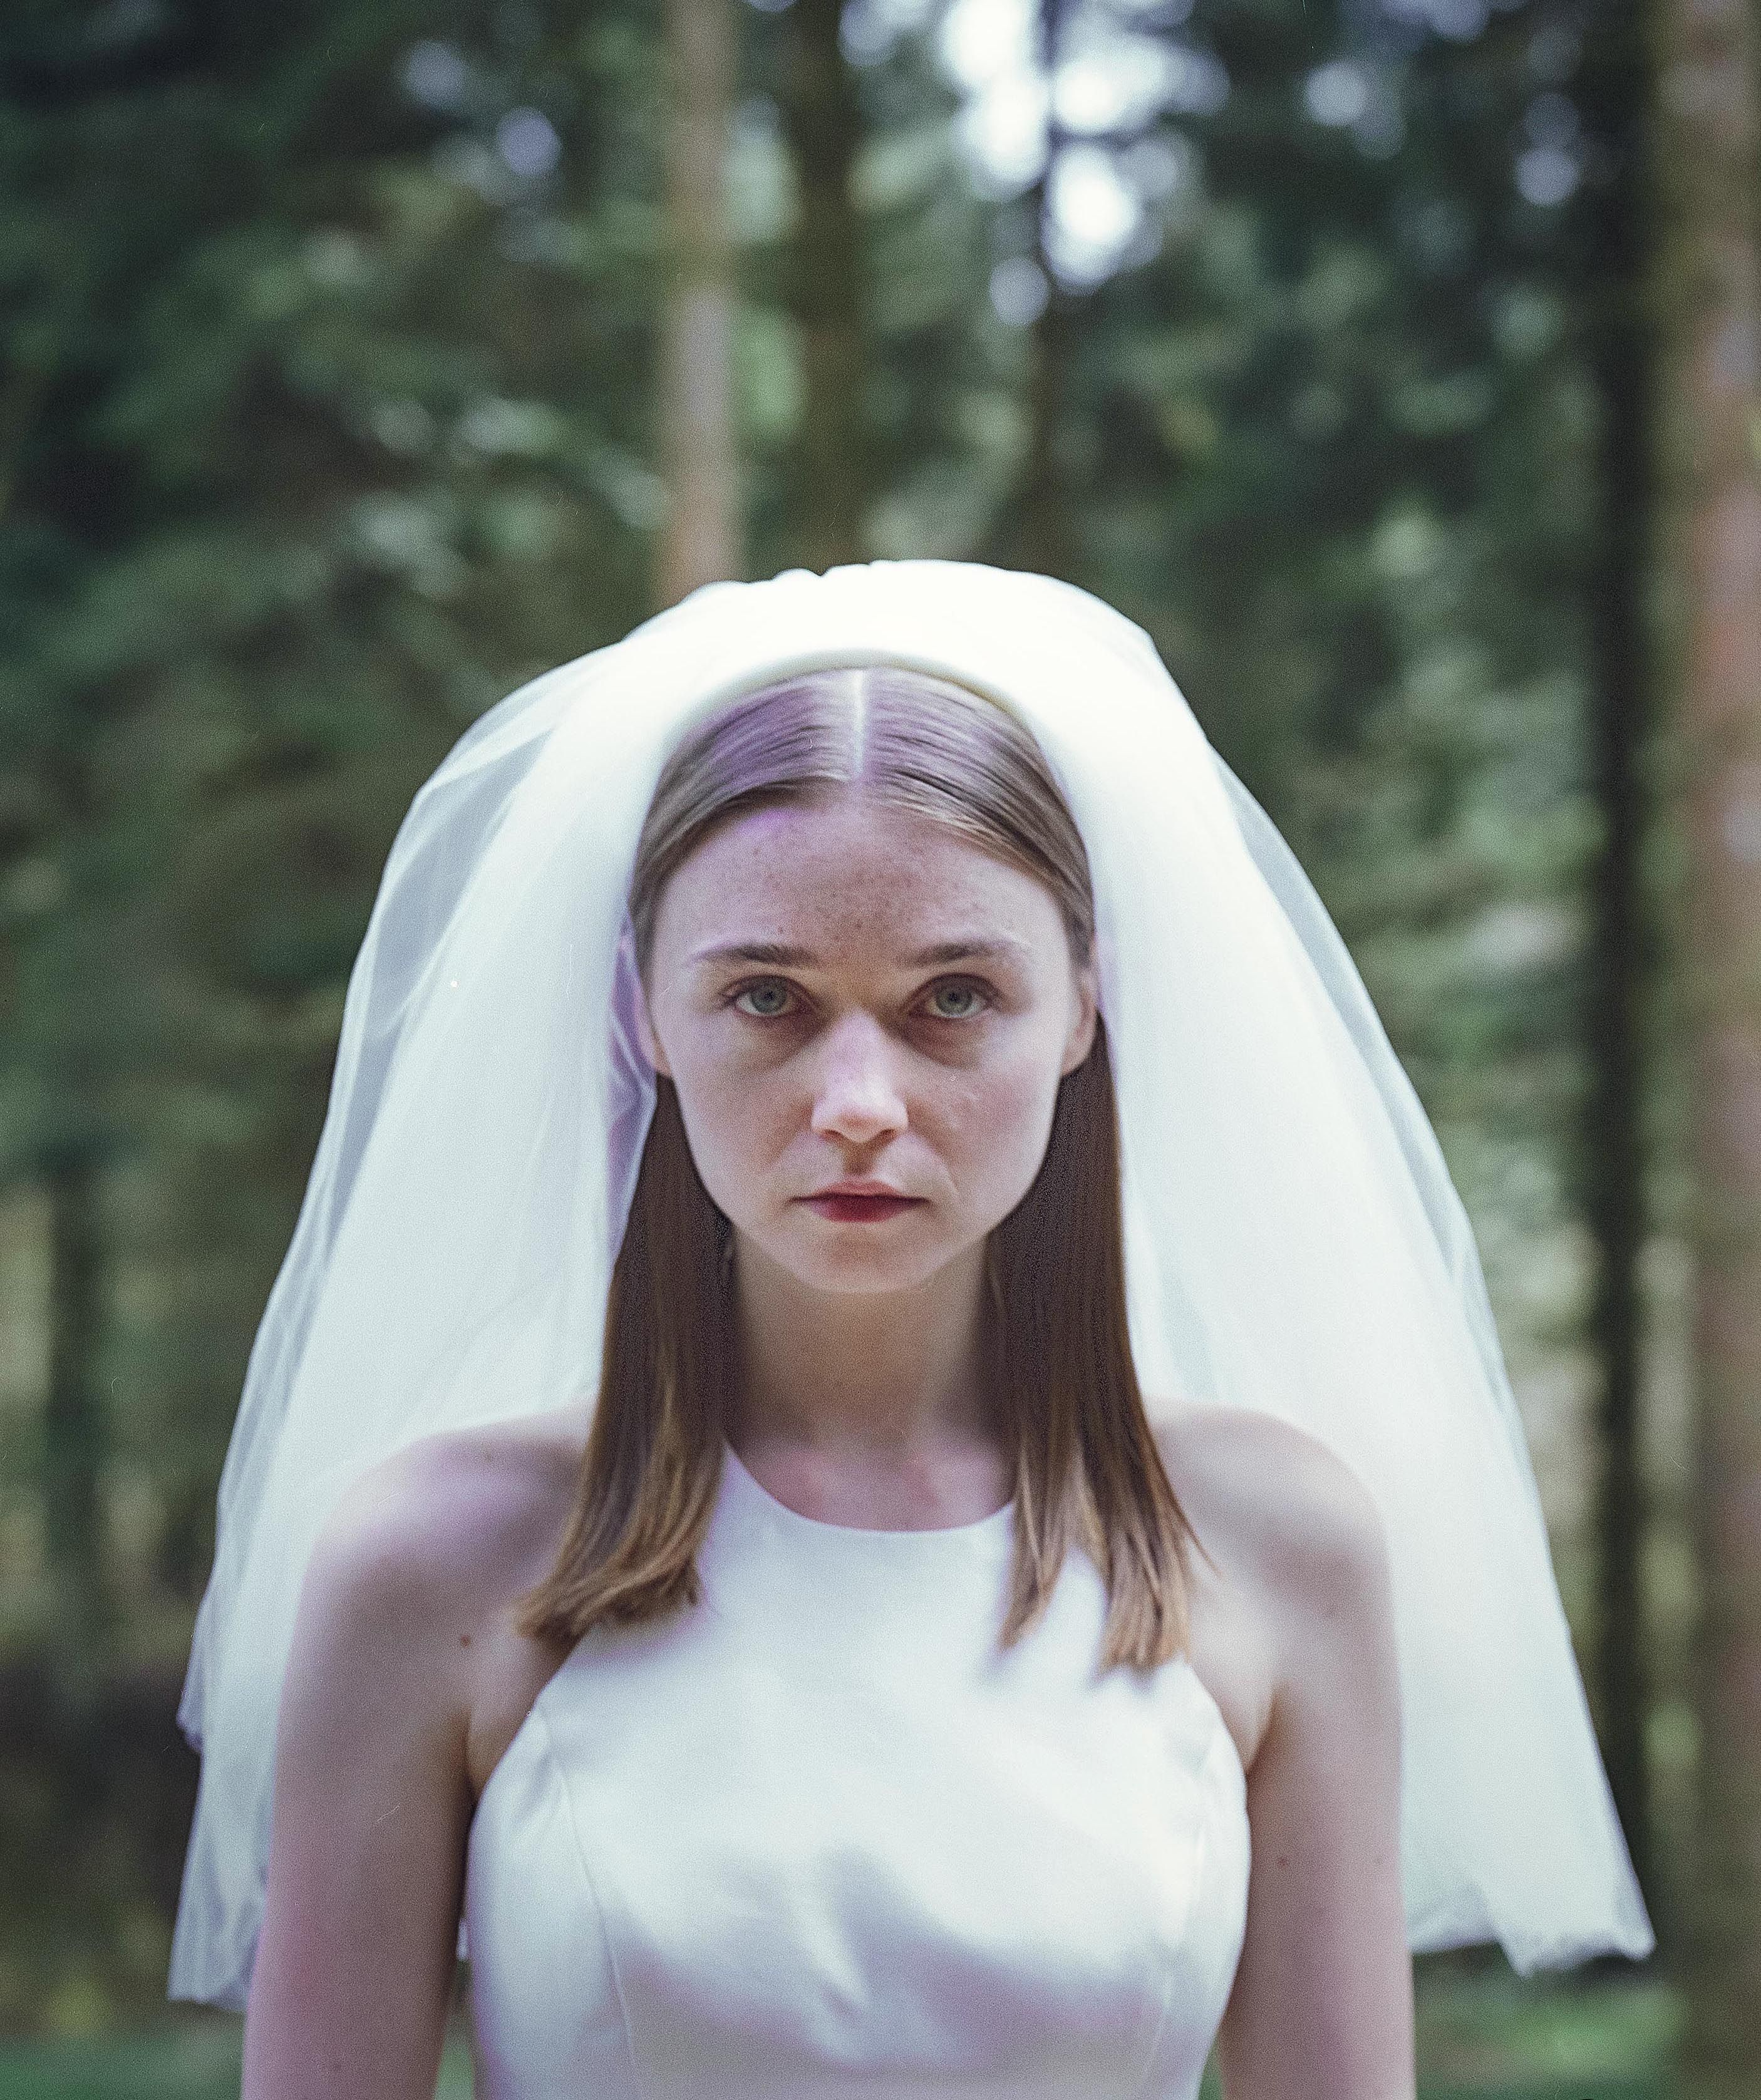 Jessica Barden as (Alyssa) in THE END OF THE FUCKING WORLD 2 on Netflix (2019).